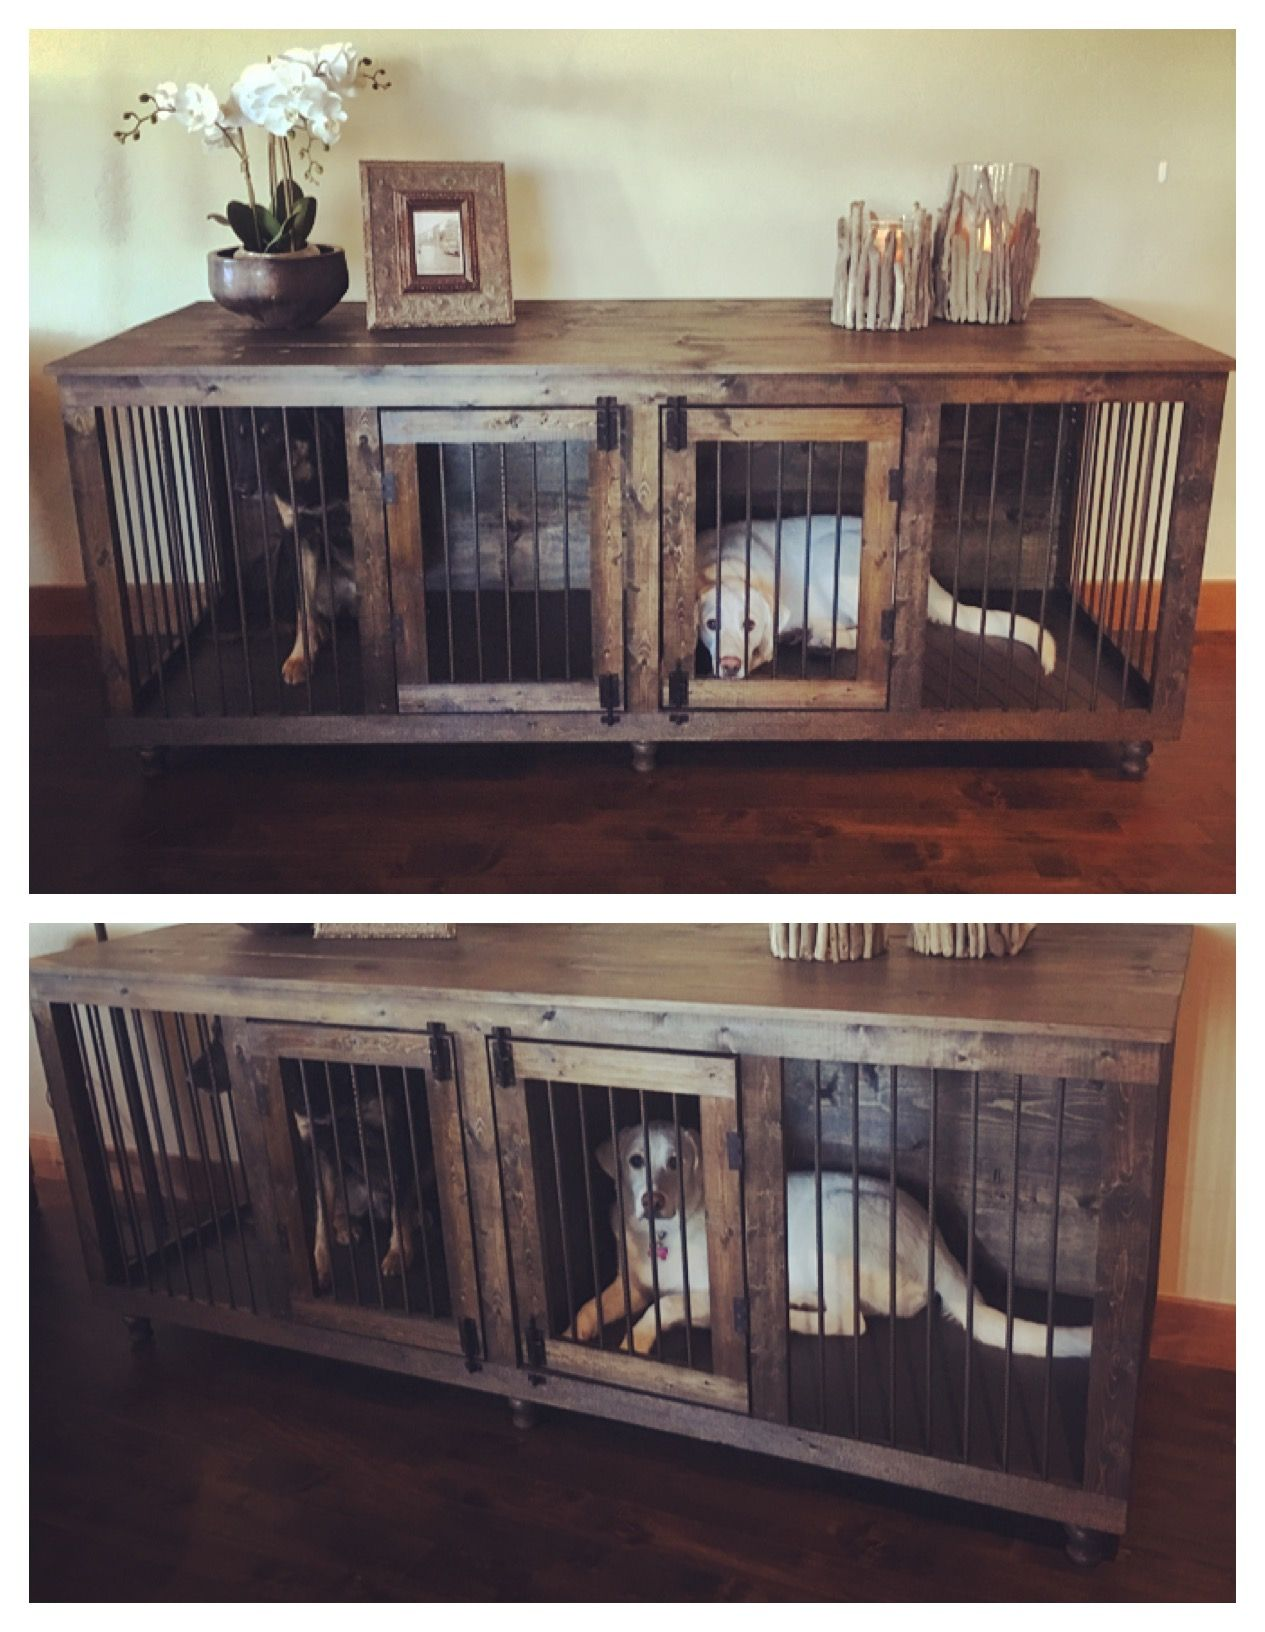 Xl Double Kennel Fits Up To Two 90 Pound Fur Babies Dog Crate Furniture Dog Rooms Diy Dog Bed